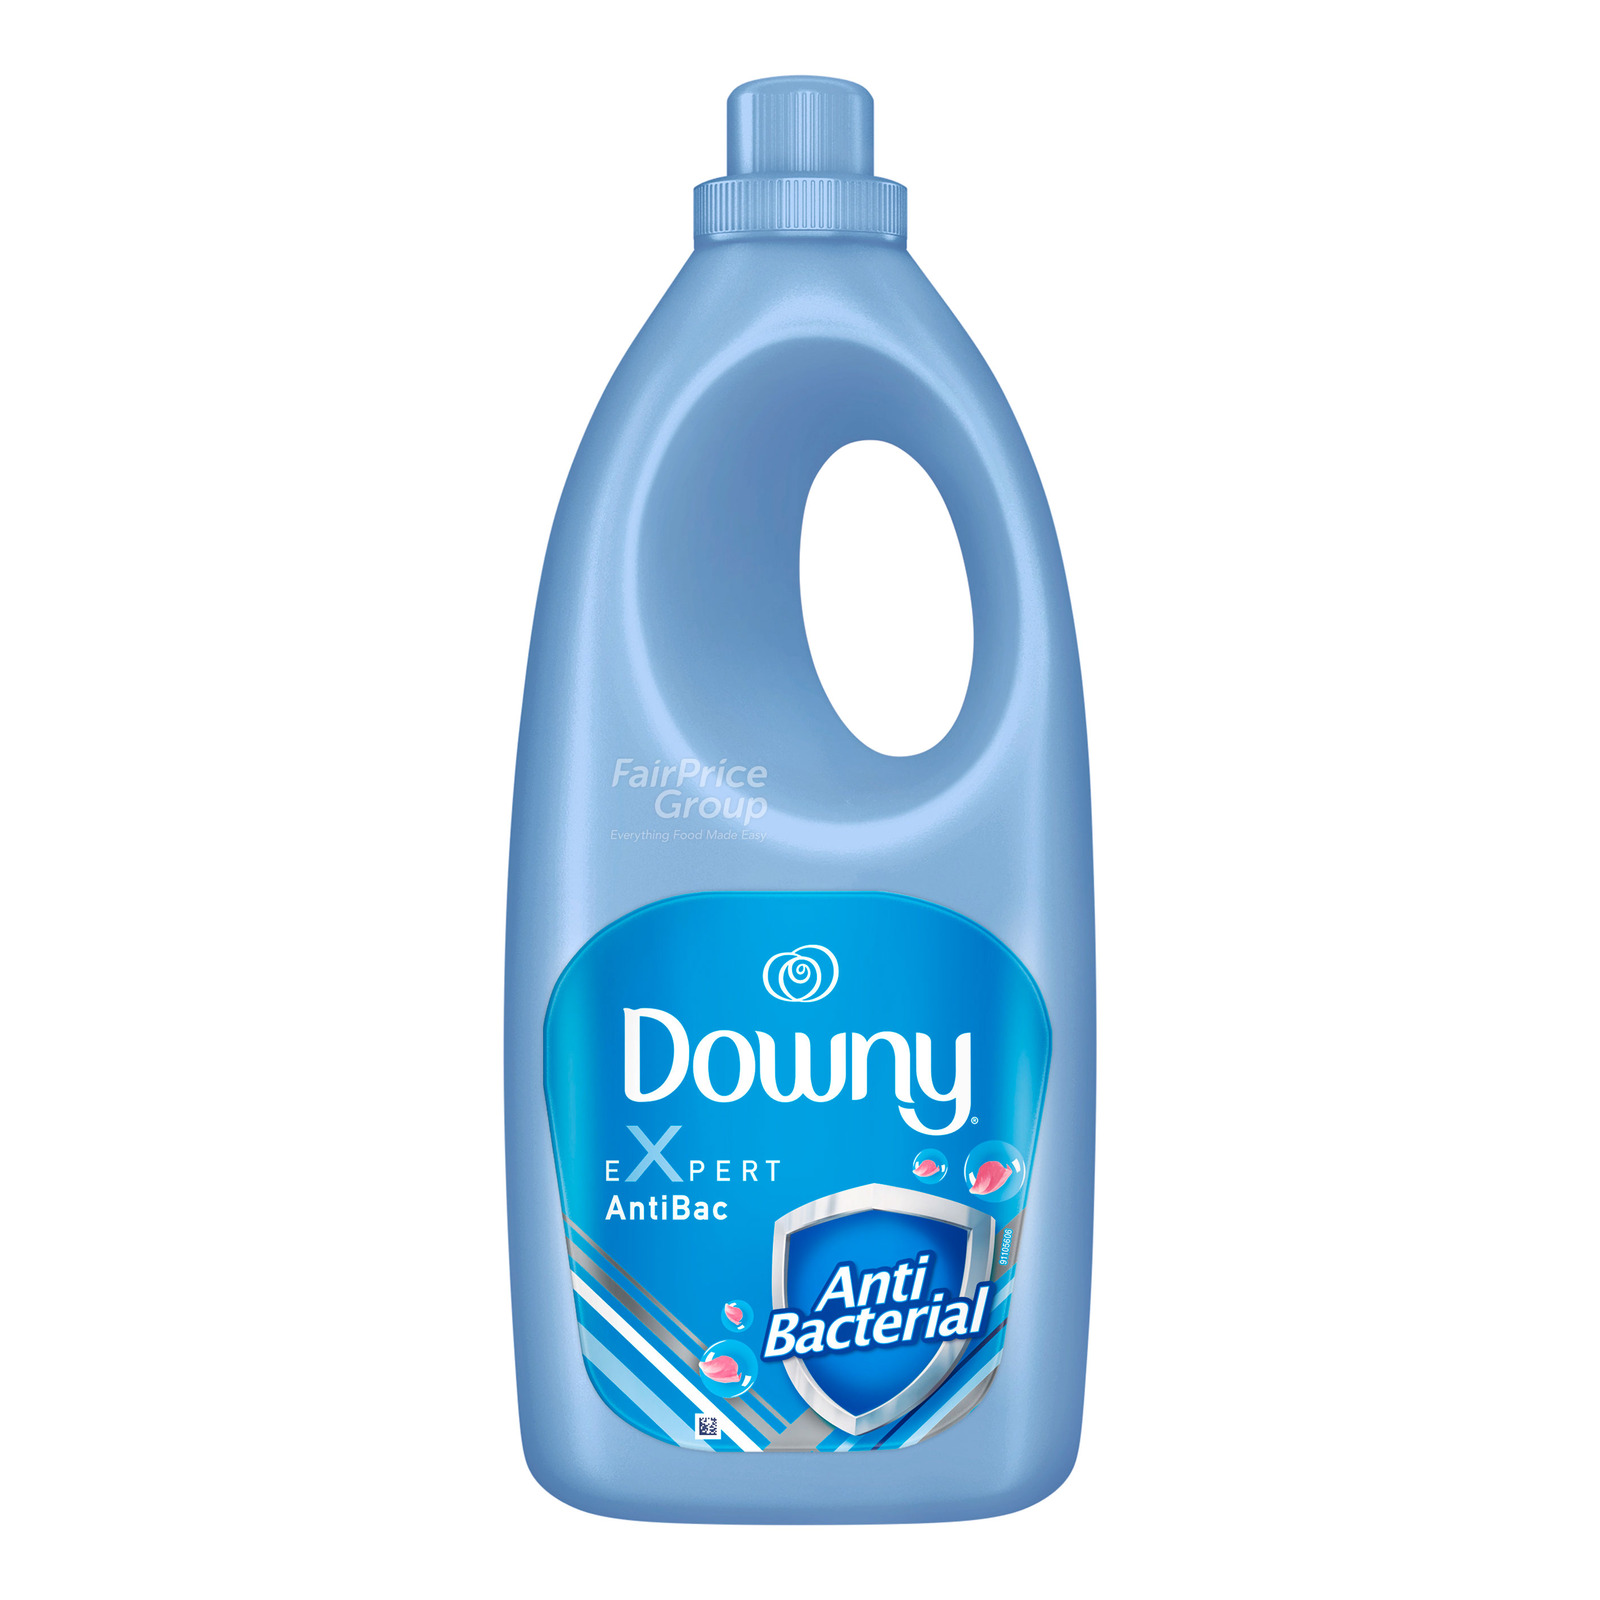 Downy Anti-Bacterial Concentrate Fabric Softener